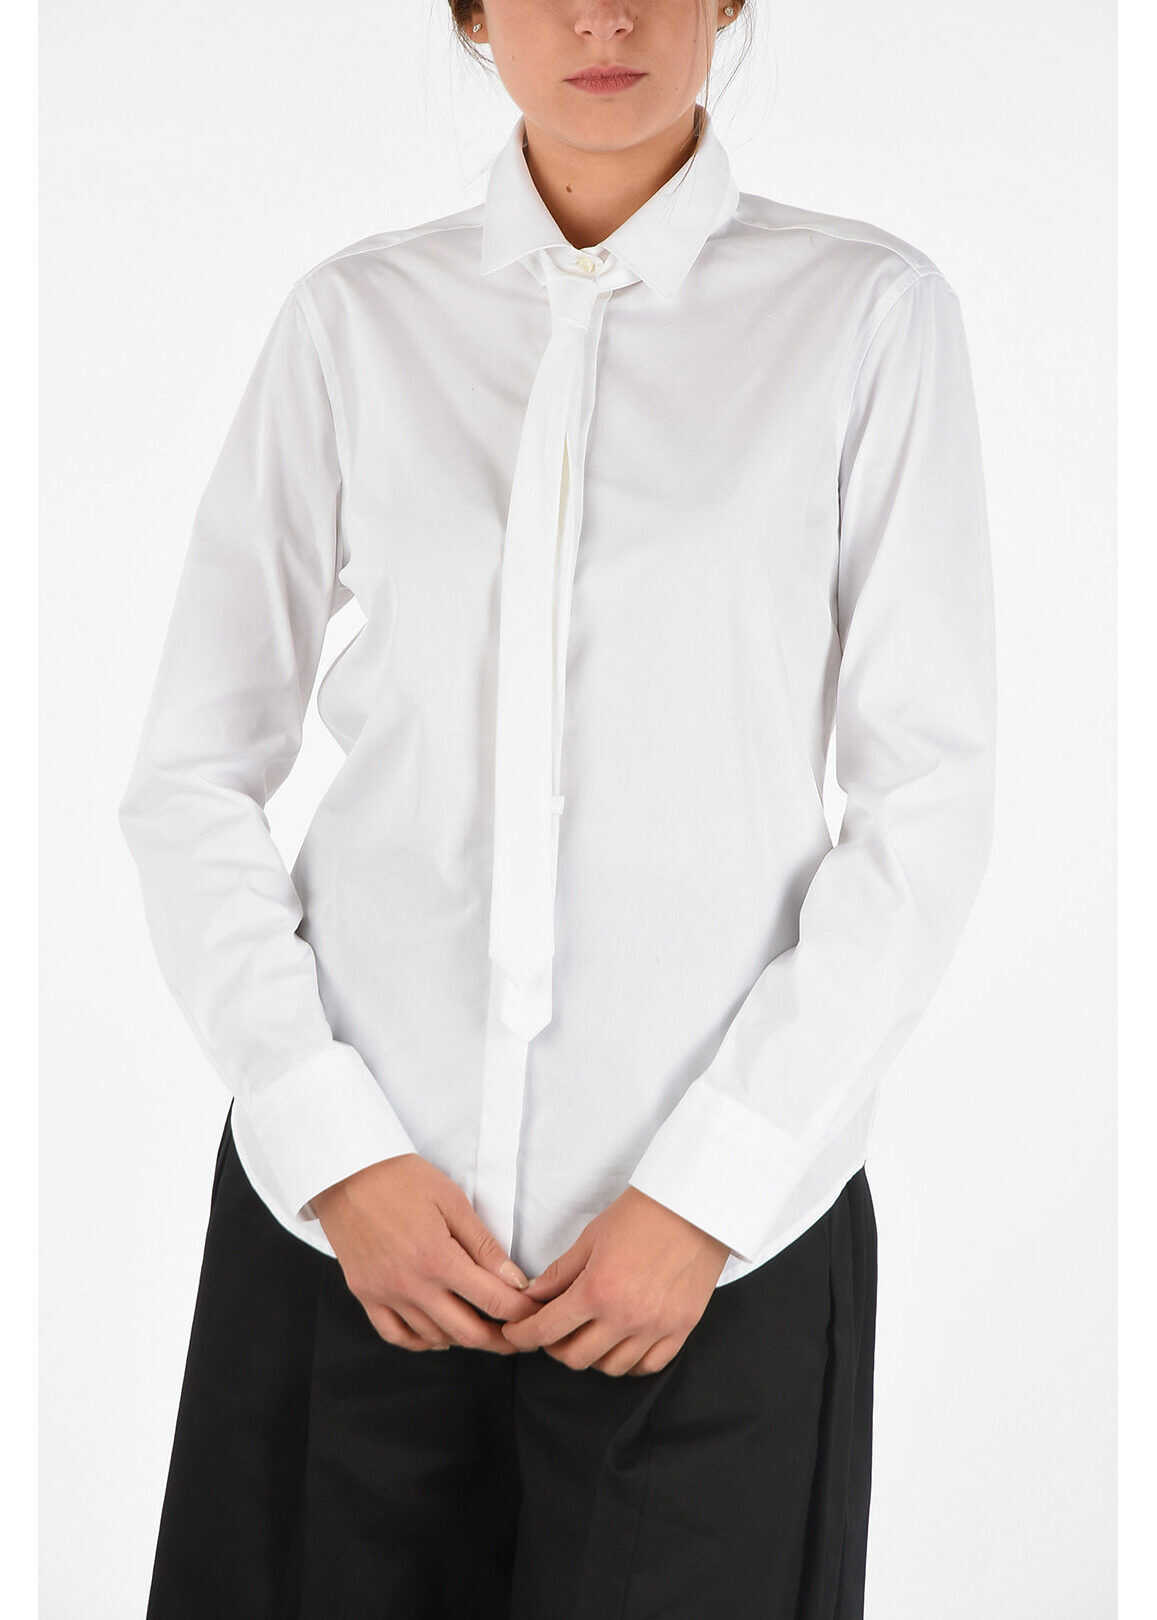 Neil Barrett Slim Fit Blouse with Tie WHITE